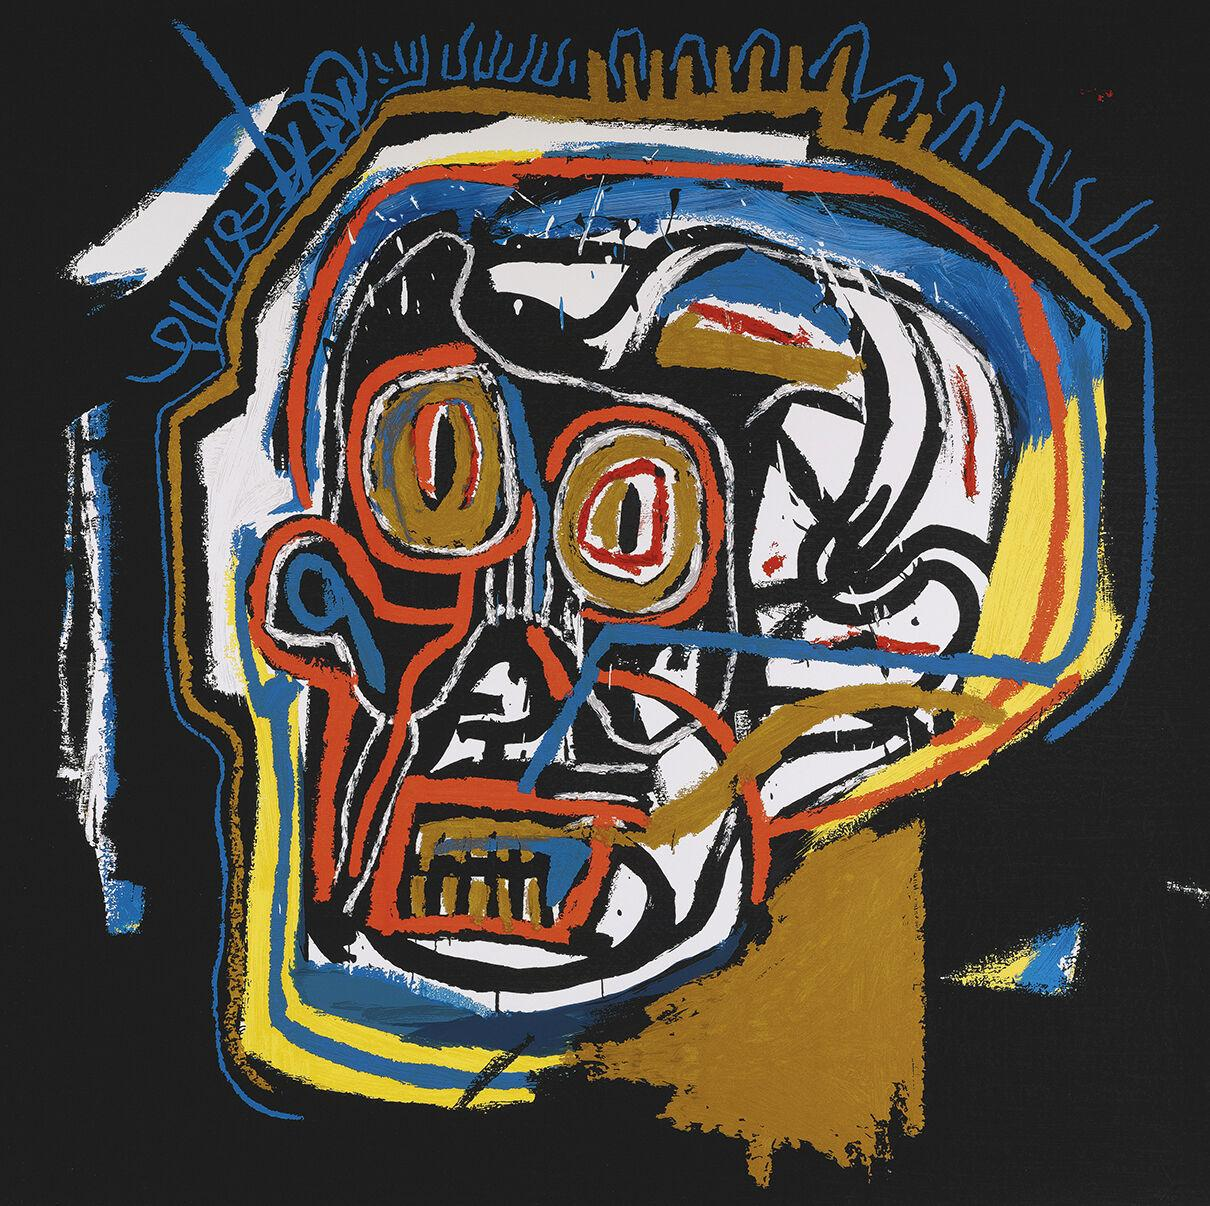 UNTITLED 1983 ERNOK HEAD by JEAN-MICHEL BASQUIAT Home Decor Handcrafts /HD Print Oil Painting On Canvas Wall Art Canvas Pictures 200305